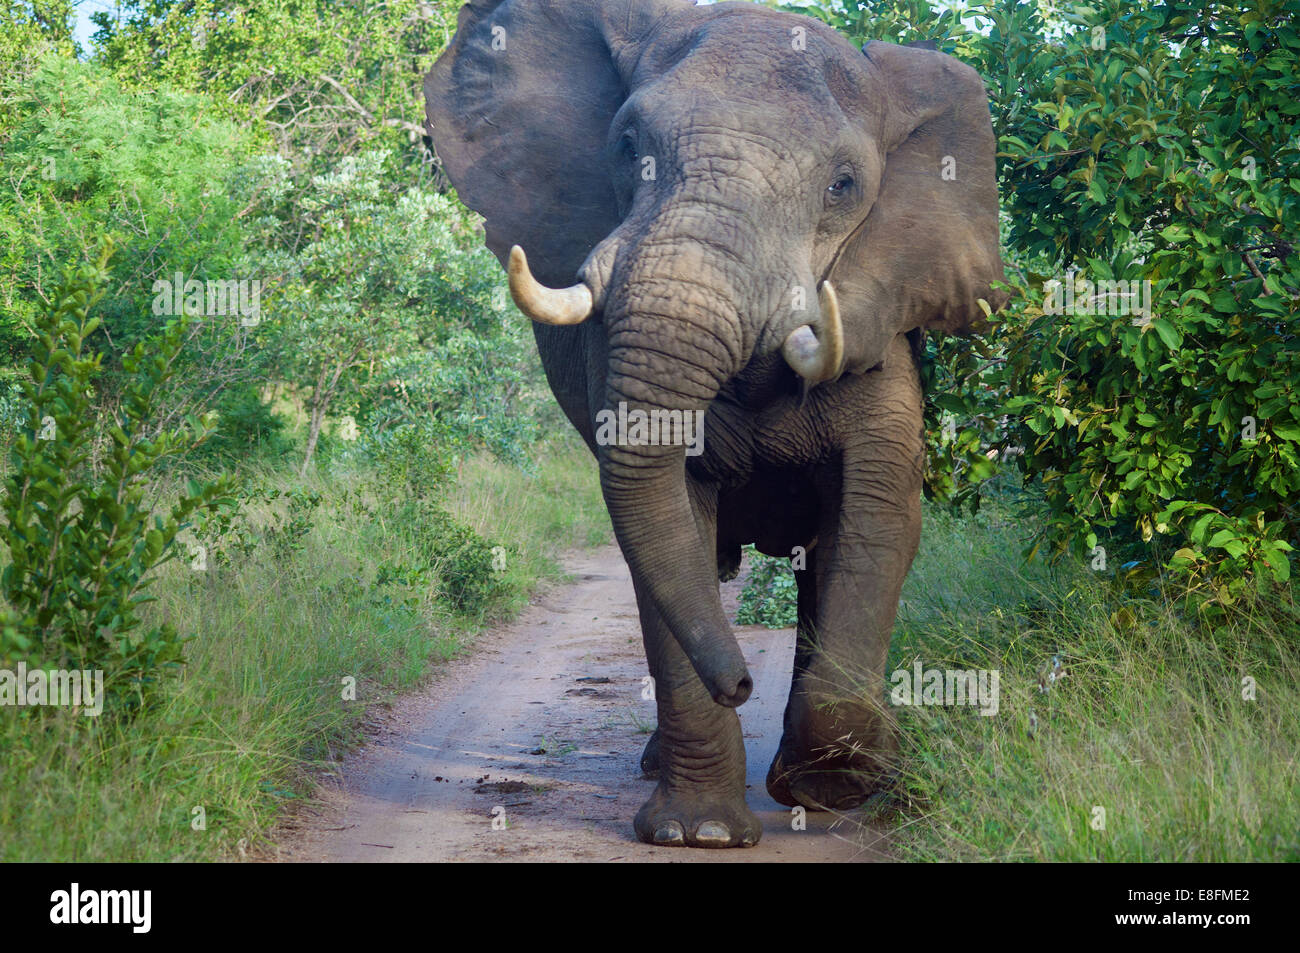 Elephant bull standing on road, Limpopo, South Africa - Stock Image